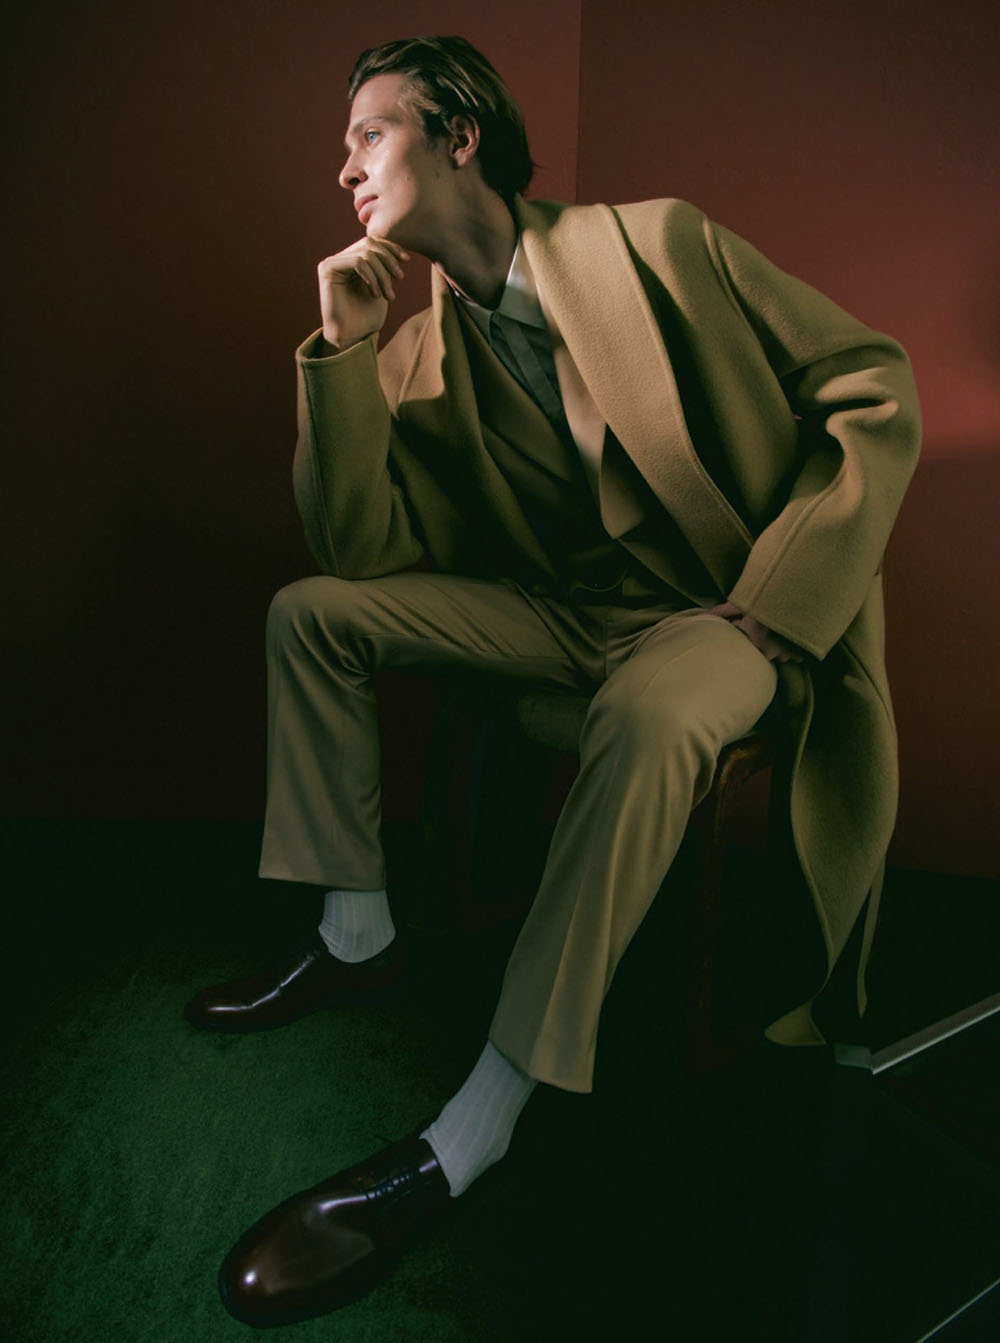 ''Hotte Stuff'' by Lee Wei Swee and Marius W Hansen for GQ France December 2020 January 2021